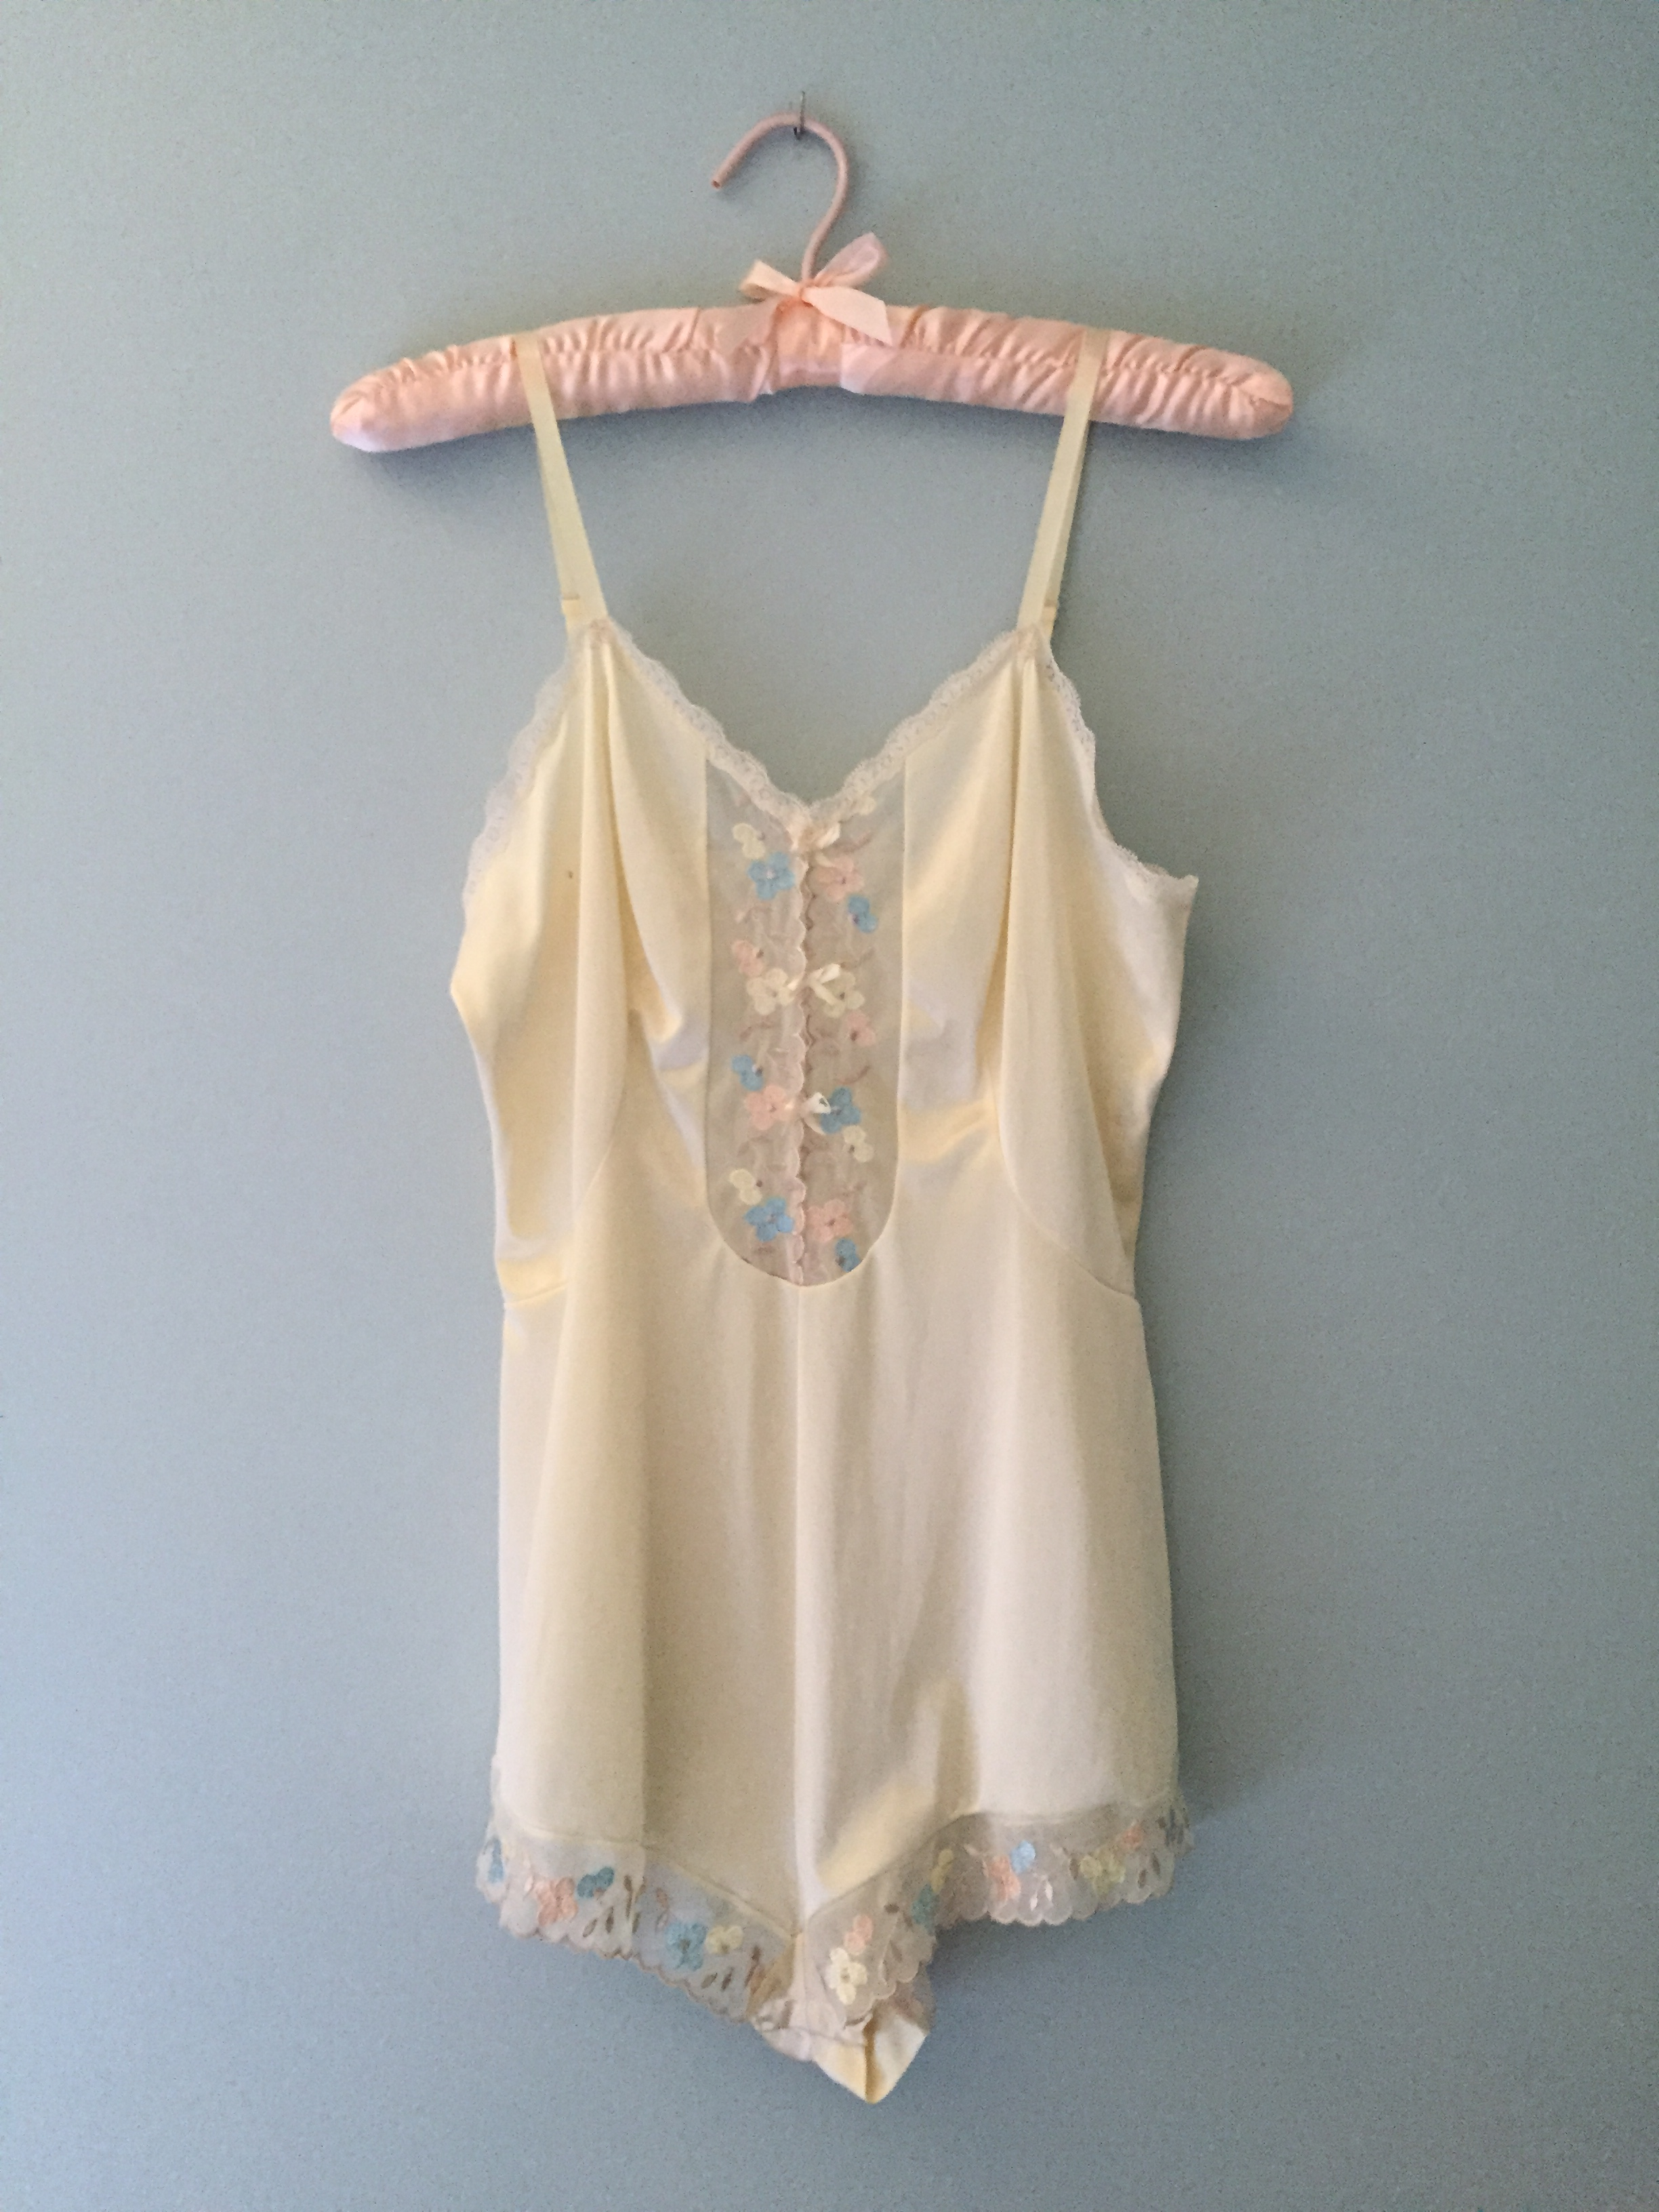 7d572ea08a Vintage Small Crazy Vanilla Ice Cream Romper